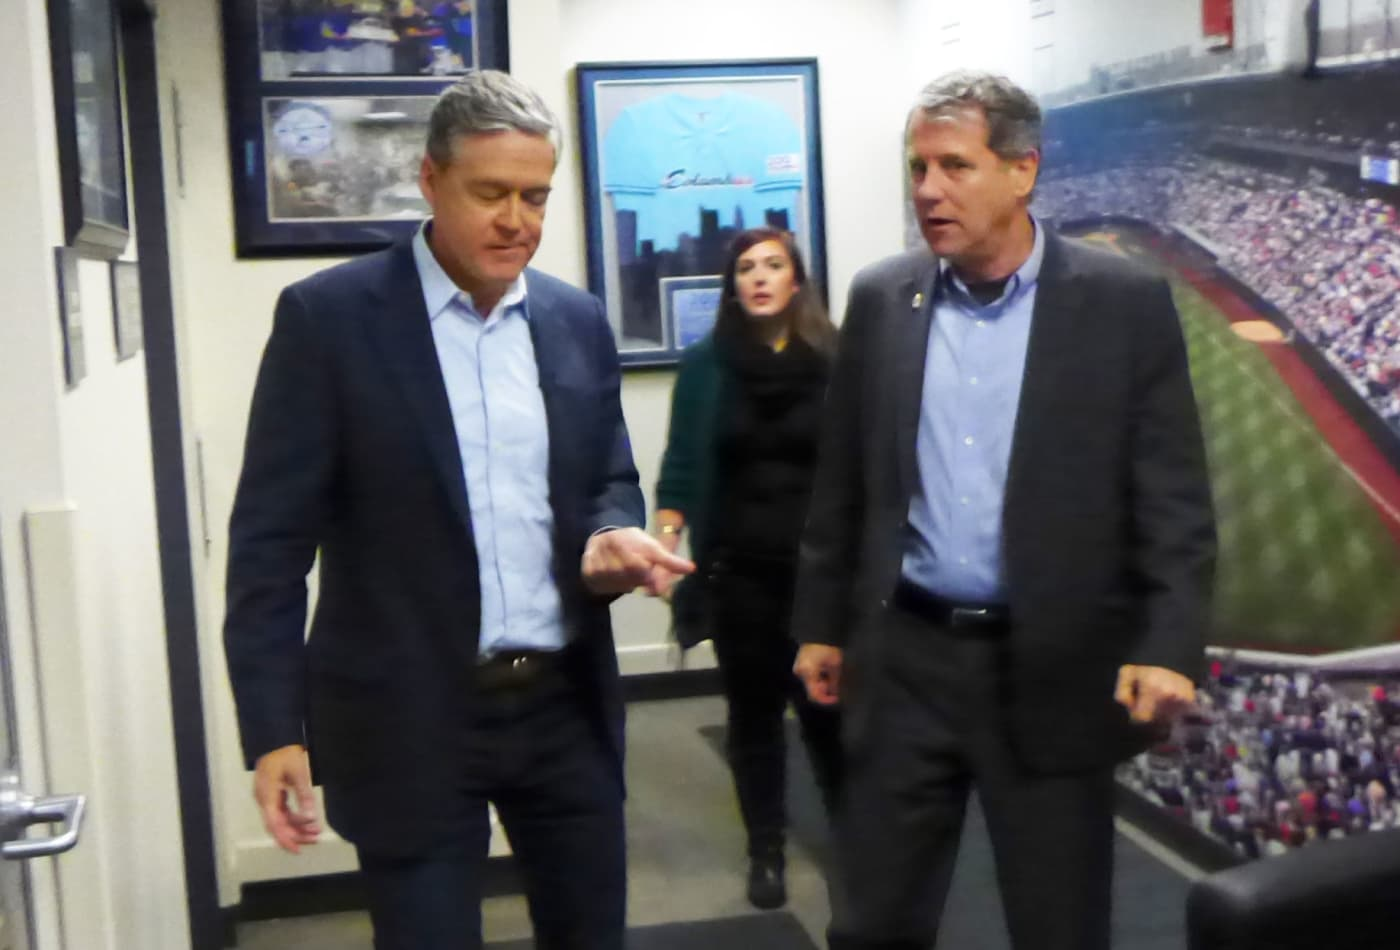 Populist Democrat Sherrod Brown might be a big threat to Trump in 2020 – but he has no 'real interest' in running